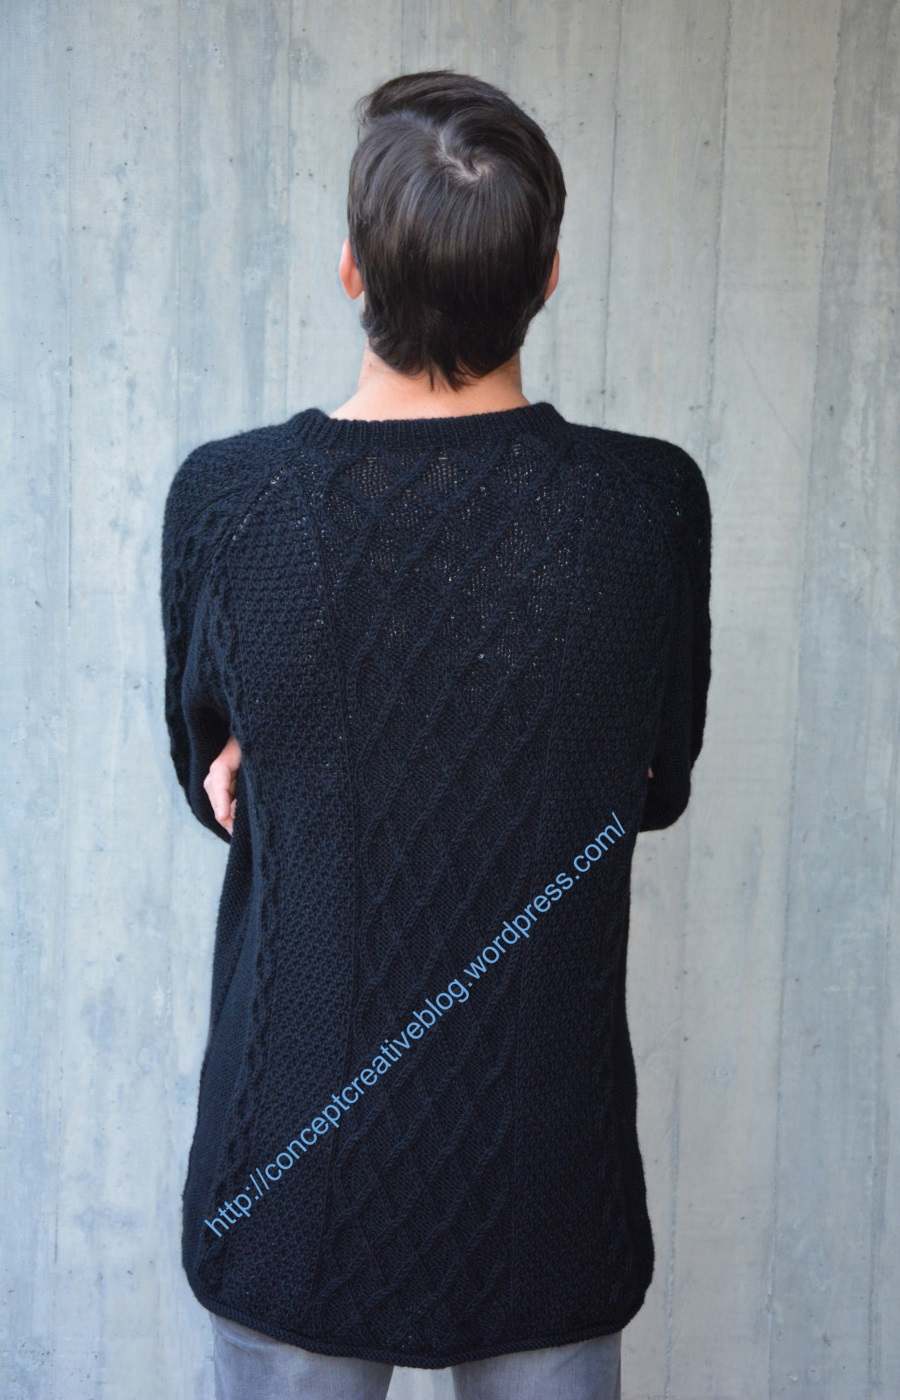 Knit cable pullover with skull pattern / free diagram